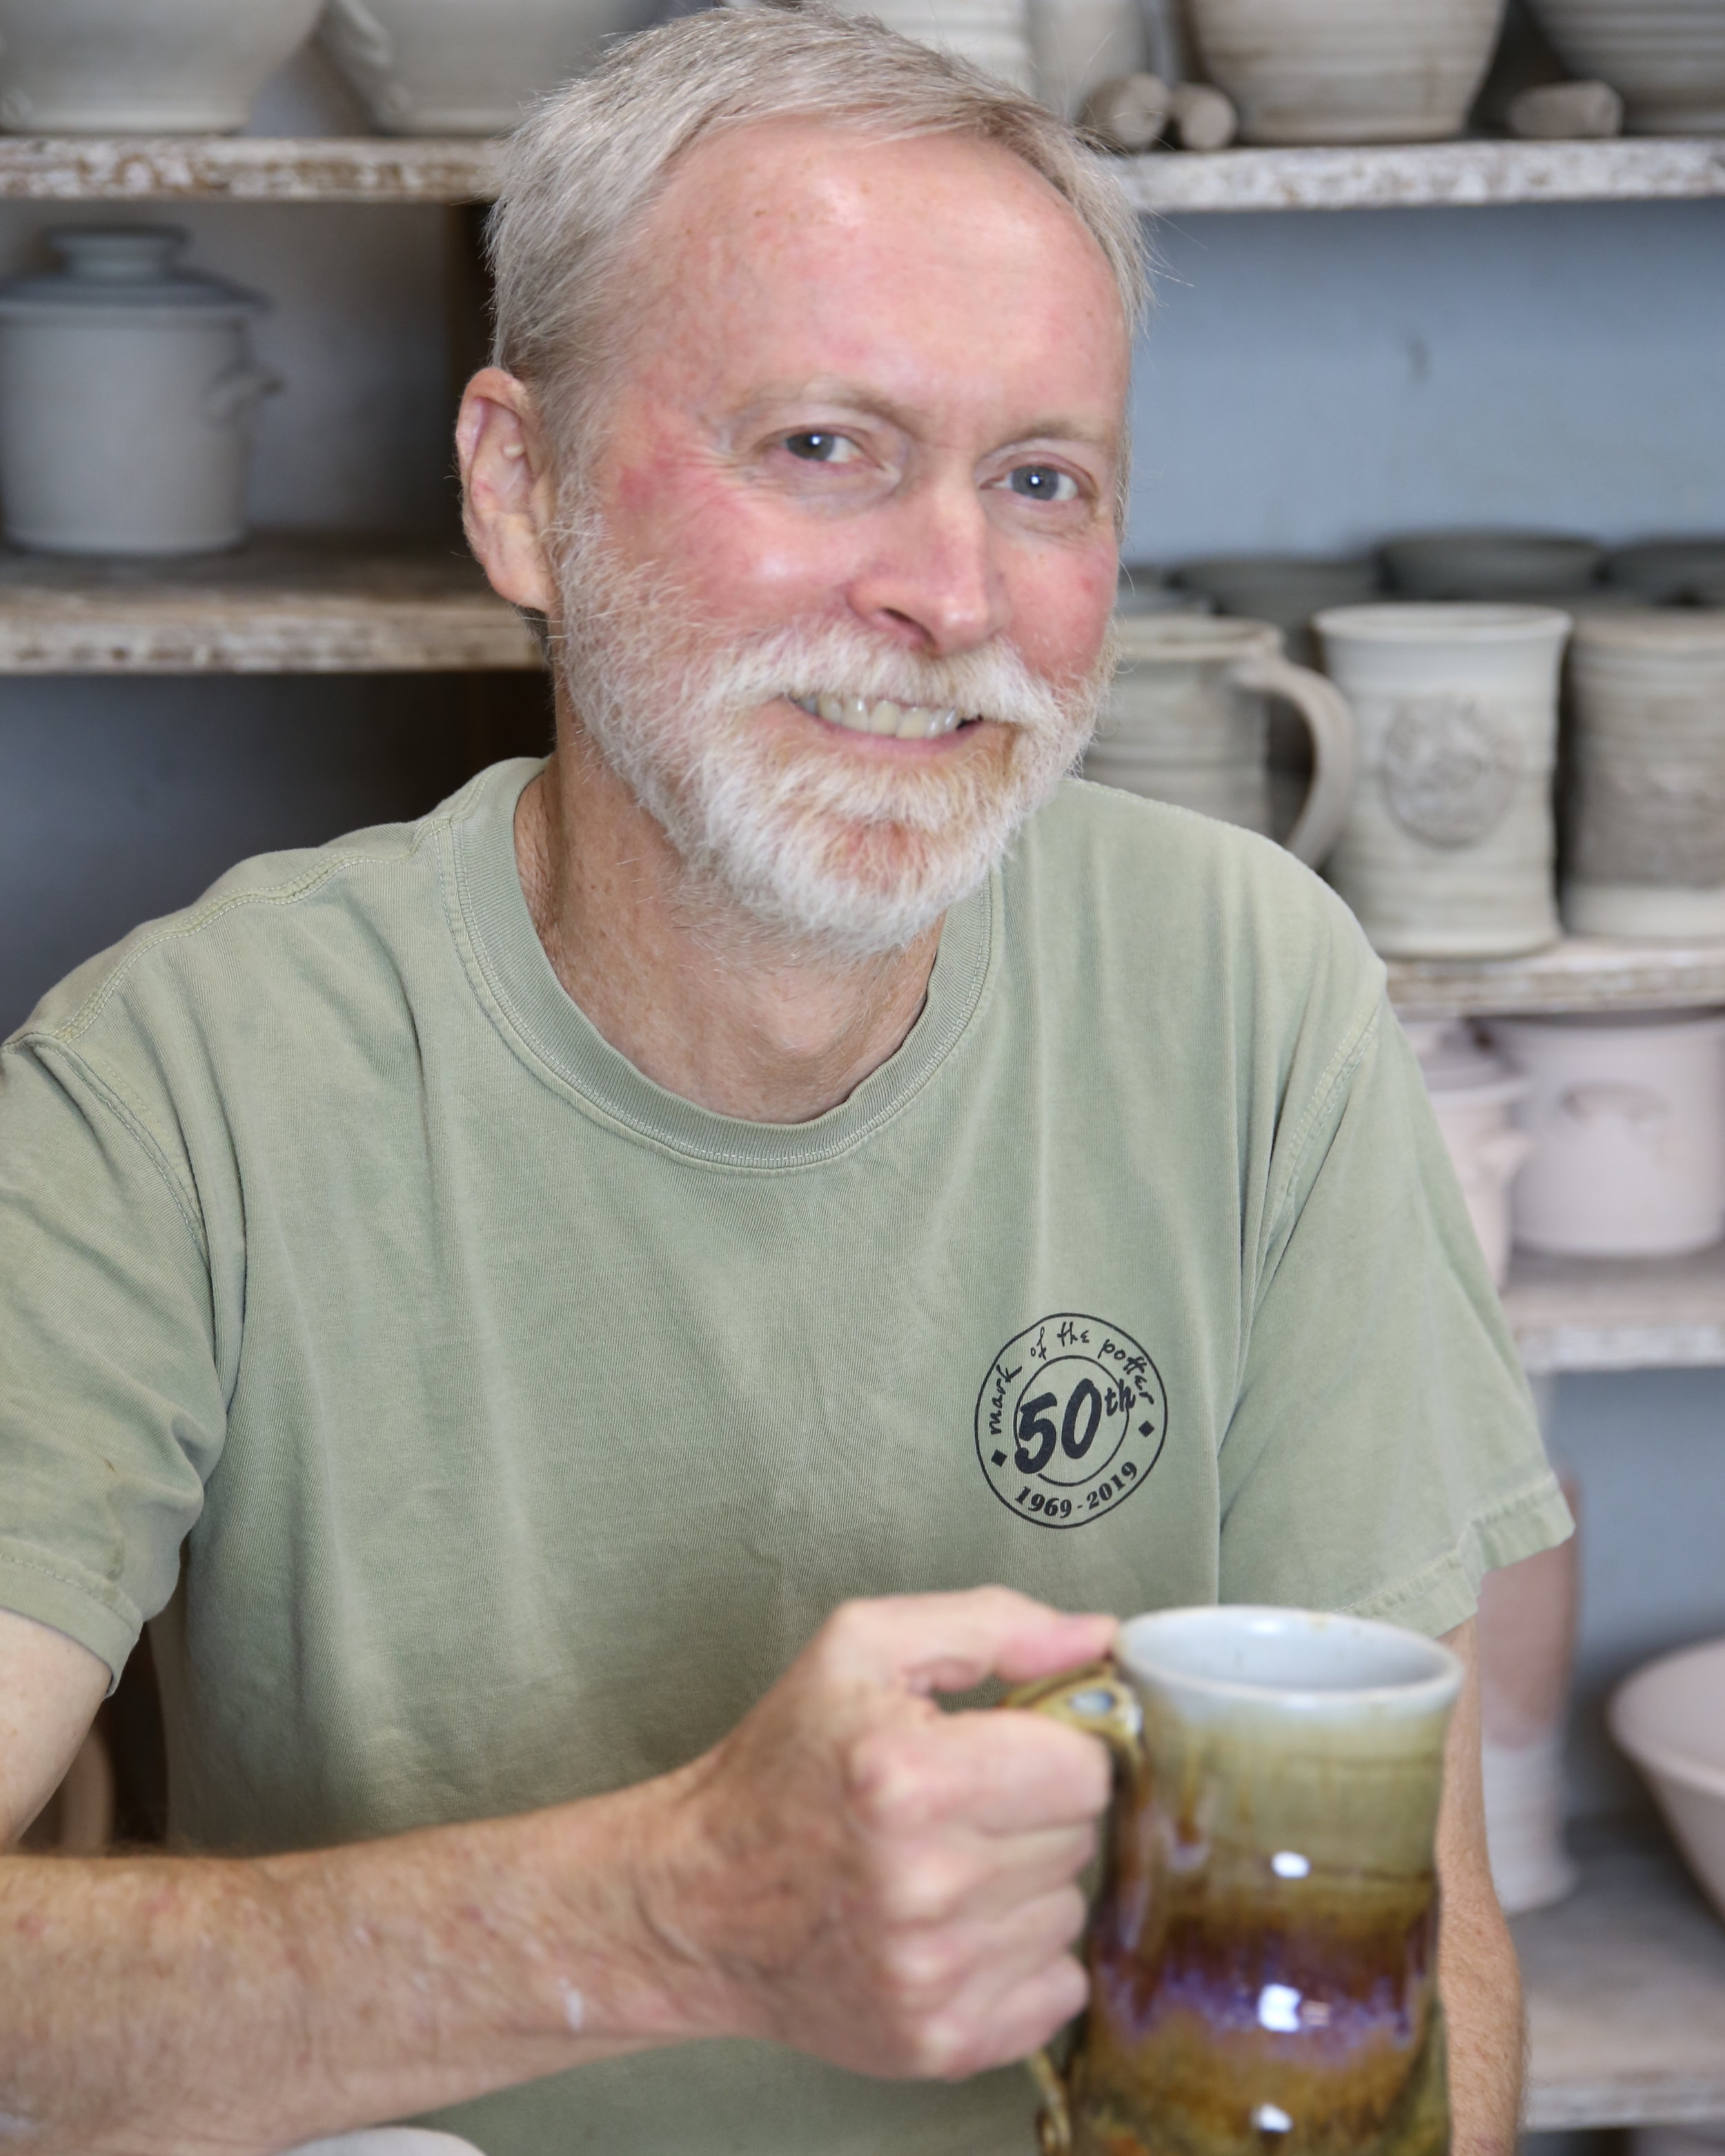 Matt Henderson   Matt began studying ceramics under John Arnold at The University of Texas, El Paso where he received his Bachelor of Art in 1981. Then in 1986 he completed the Master of Fine Art program at The University of North Texas under Elmer Taylor.  With over 38 years of experience creating pottery and teaching at the university level Matt is still passionate about the craft and art of clay. He still feels there is nothing more gratifying than seeing his pottery being used and enjoyed.